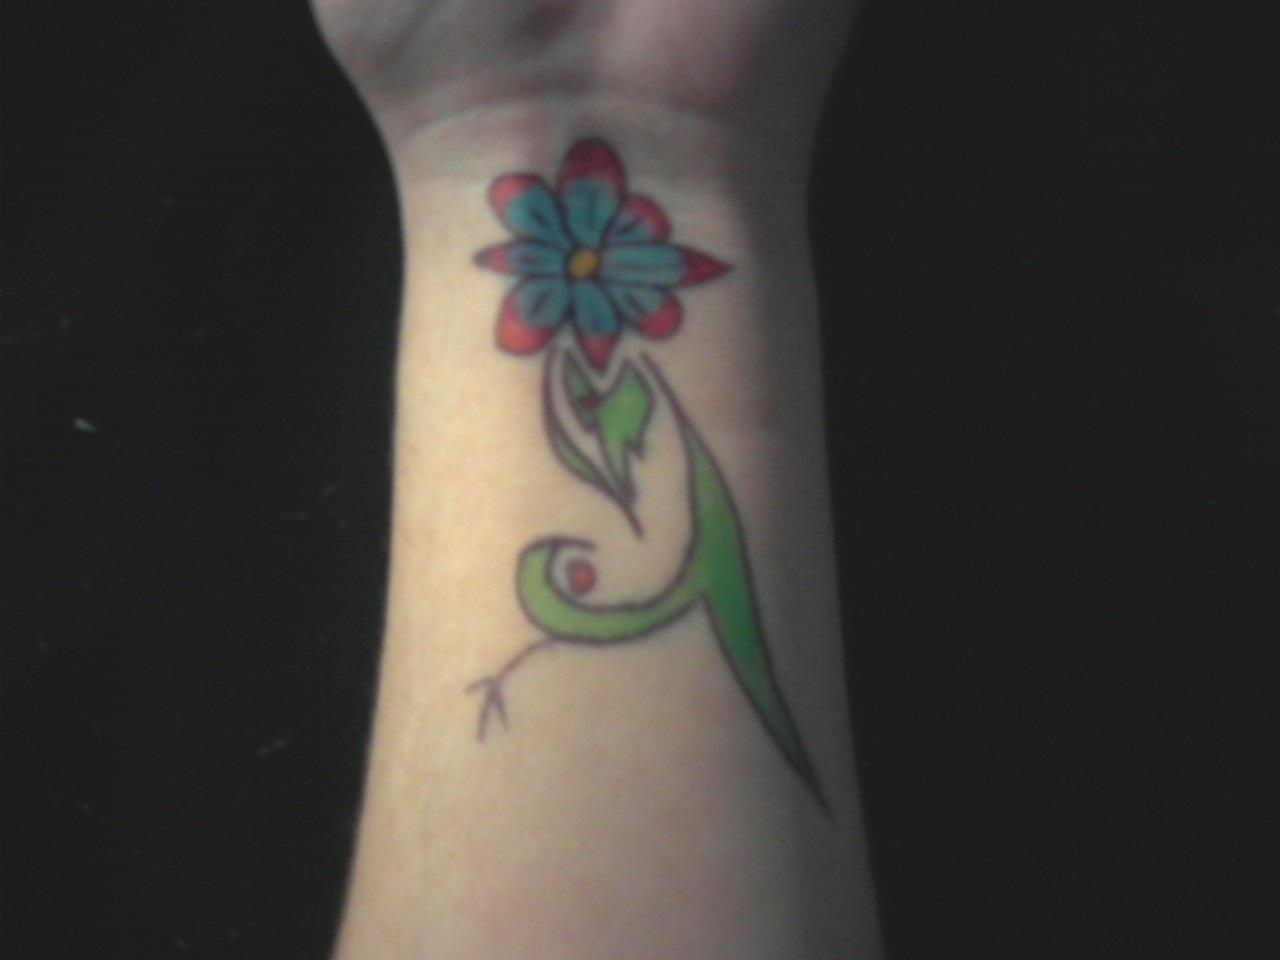 Daisy tattoos designs ideas and meaning tattoos for you daisy flower tattoo design izmirmasajfo Image collections